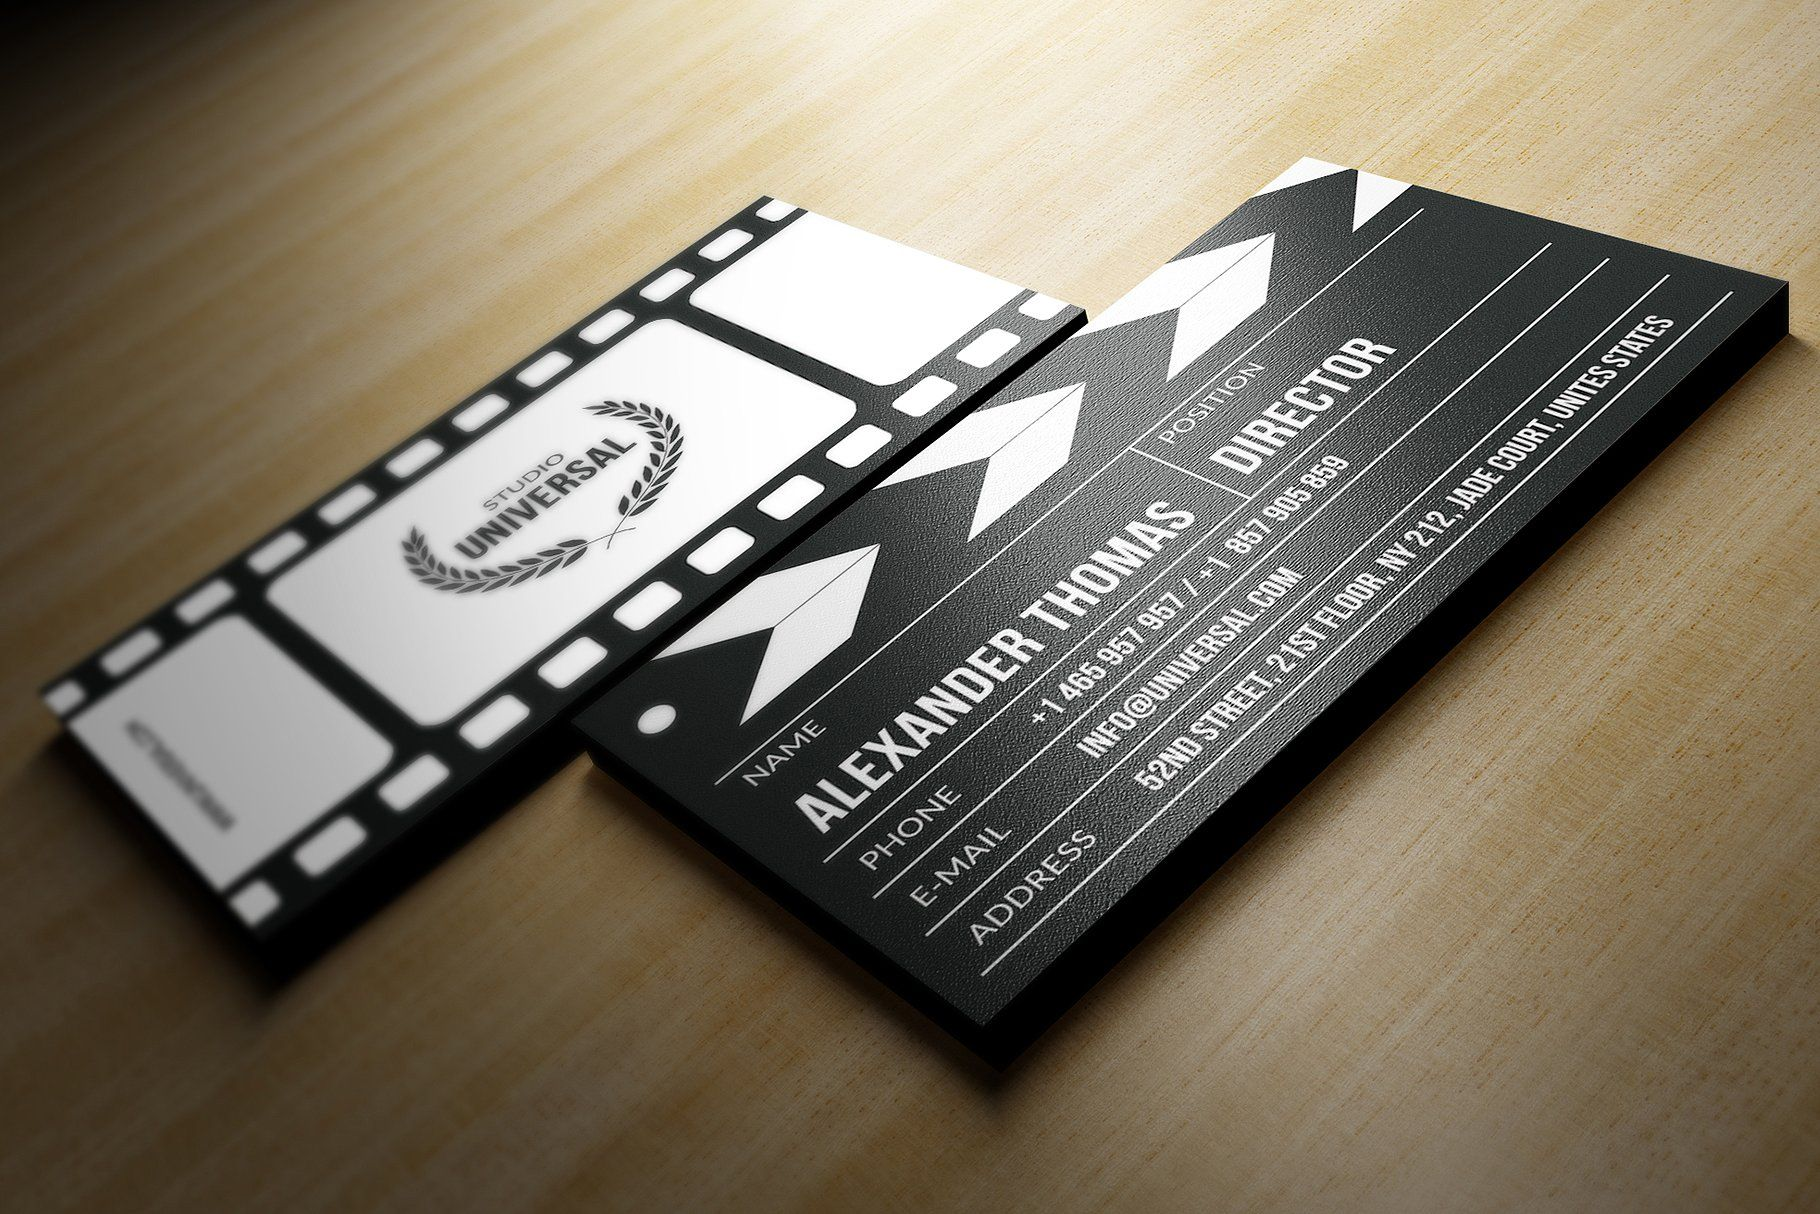 11 Hd High Quality Business Card Sample For Wedding Videographer